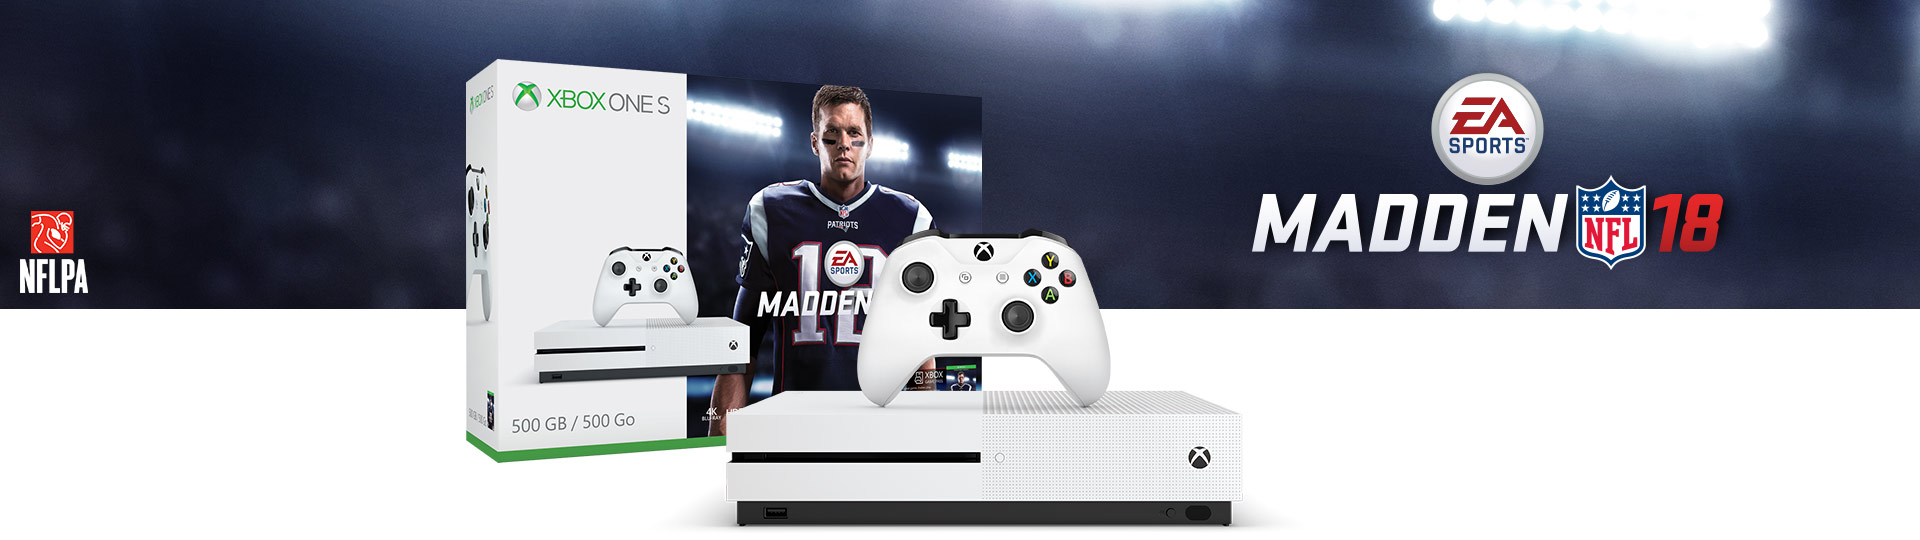 Xbox One S Madden 18 500GB